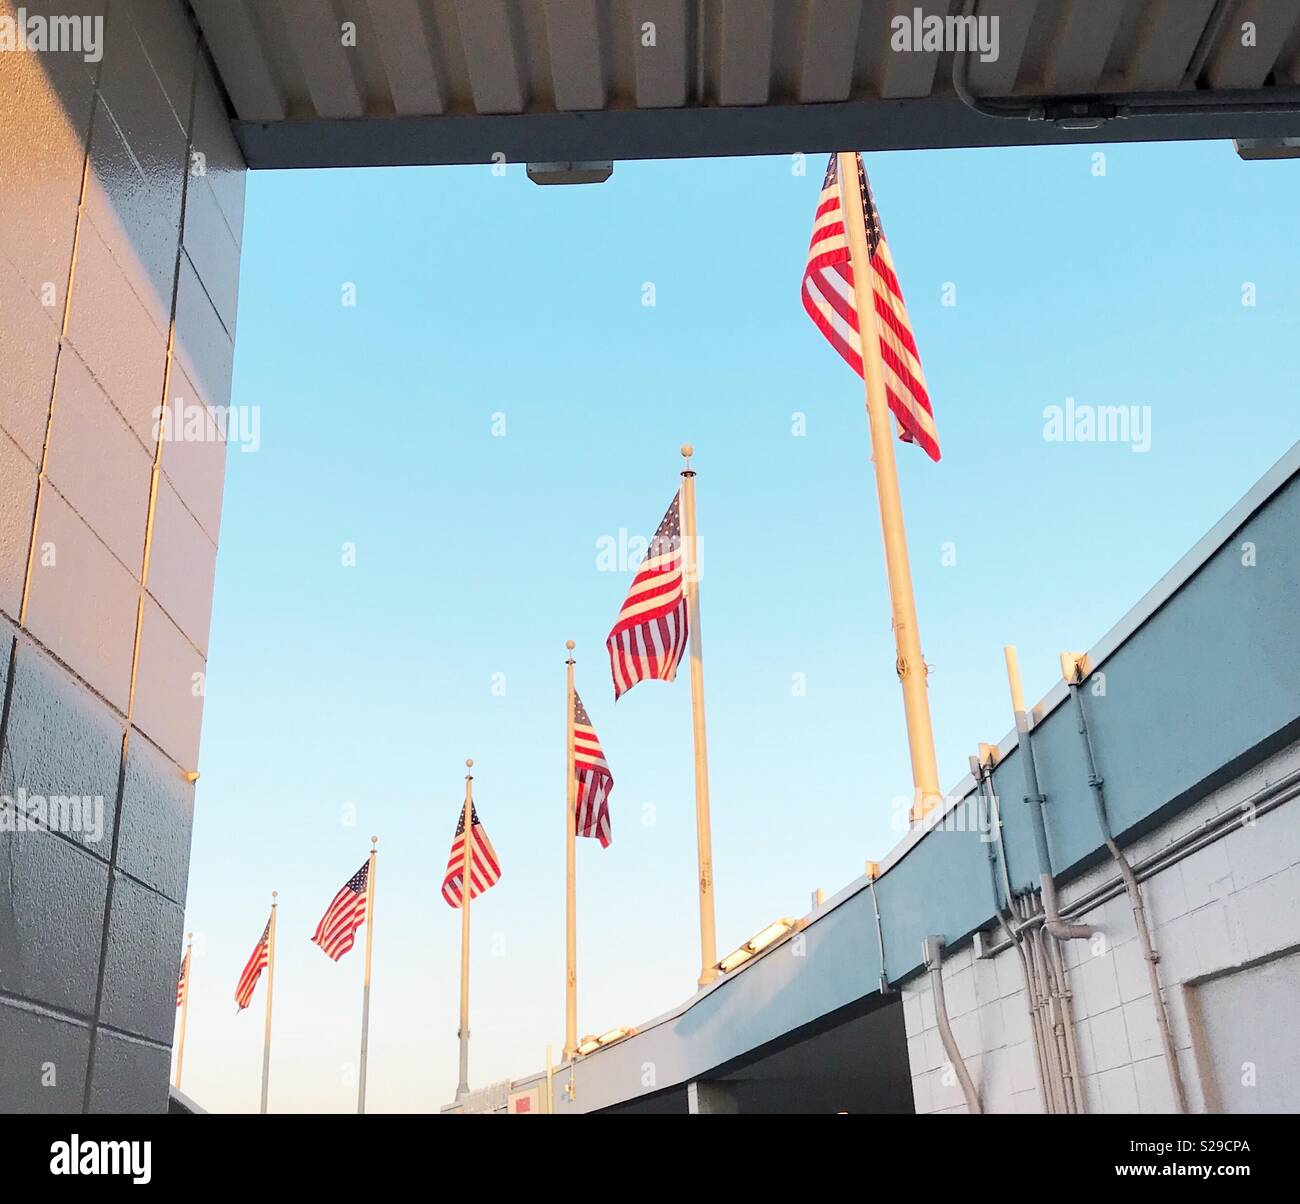 American flags flying in a group against blue sky. - Stock Image